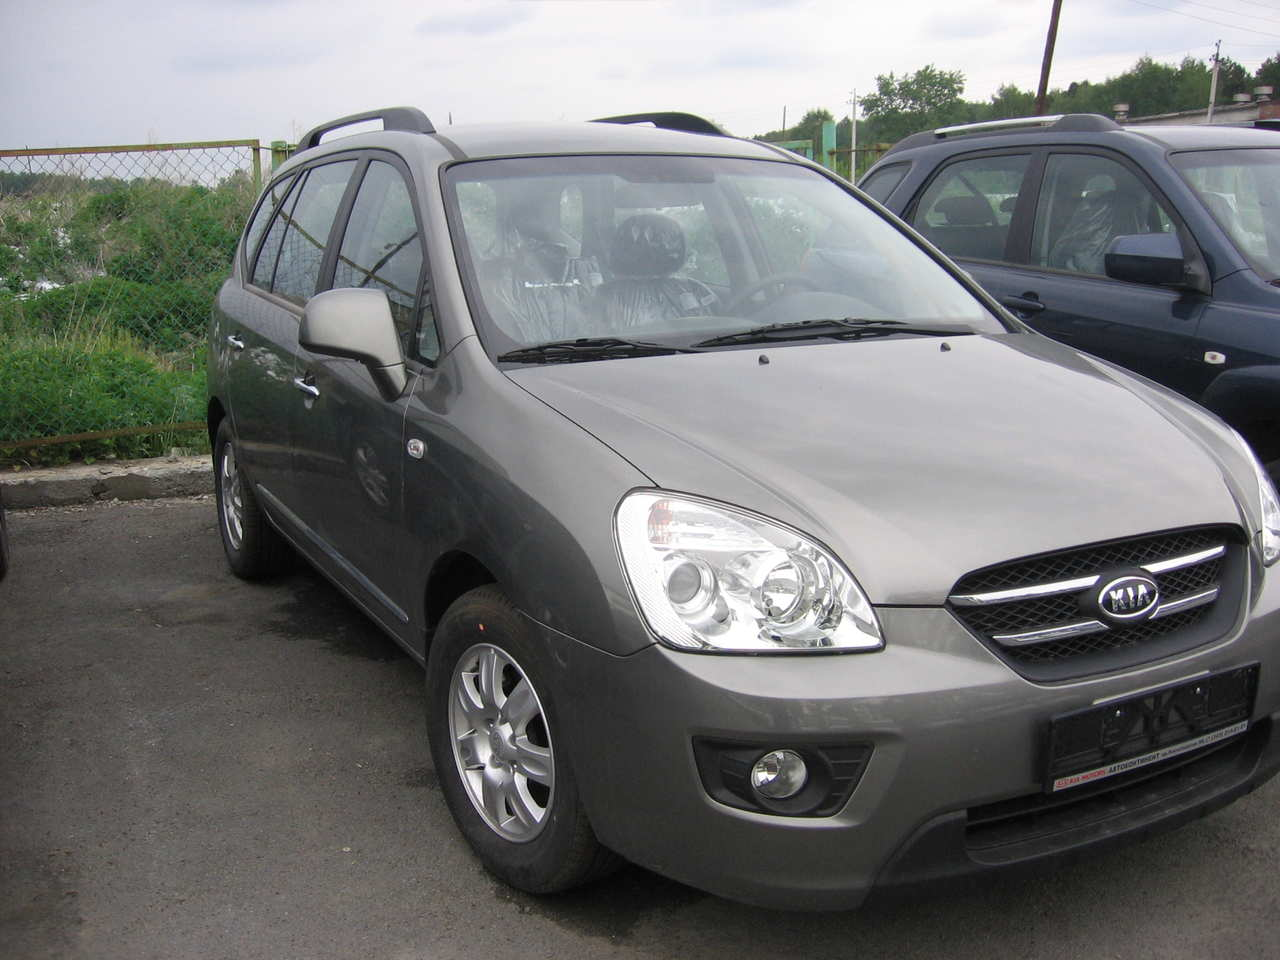 used 2009 kia carens photos 2000cc gasoline ff manual for sale. Black Bedroom Furniture Sets. Home Design Ideas